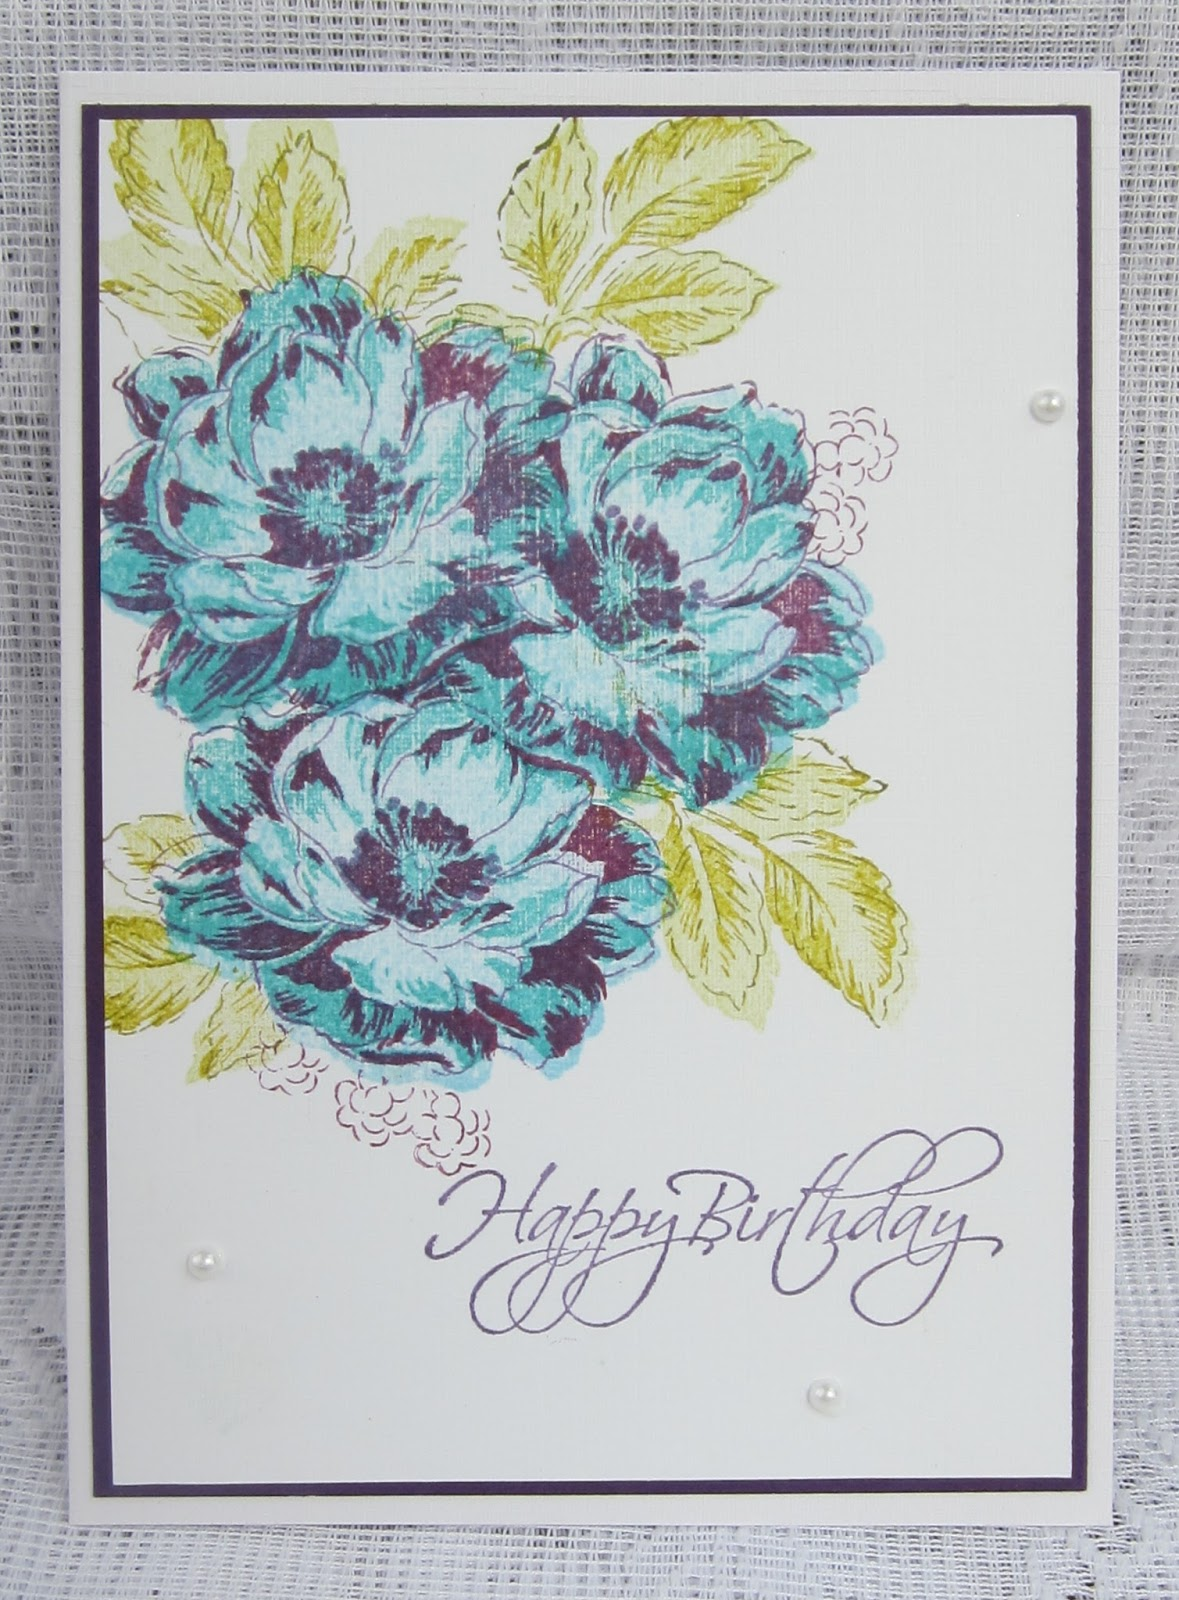 Floral fantasies fabulous blooms heres another one using shades of blue and purple and i quite like the contrast and depth the deeper colours give i have so many colour combinations i izmirmasajfo